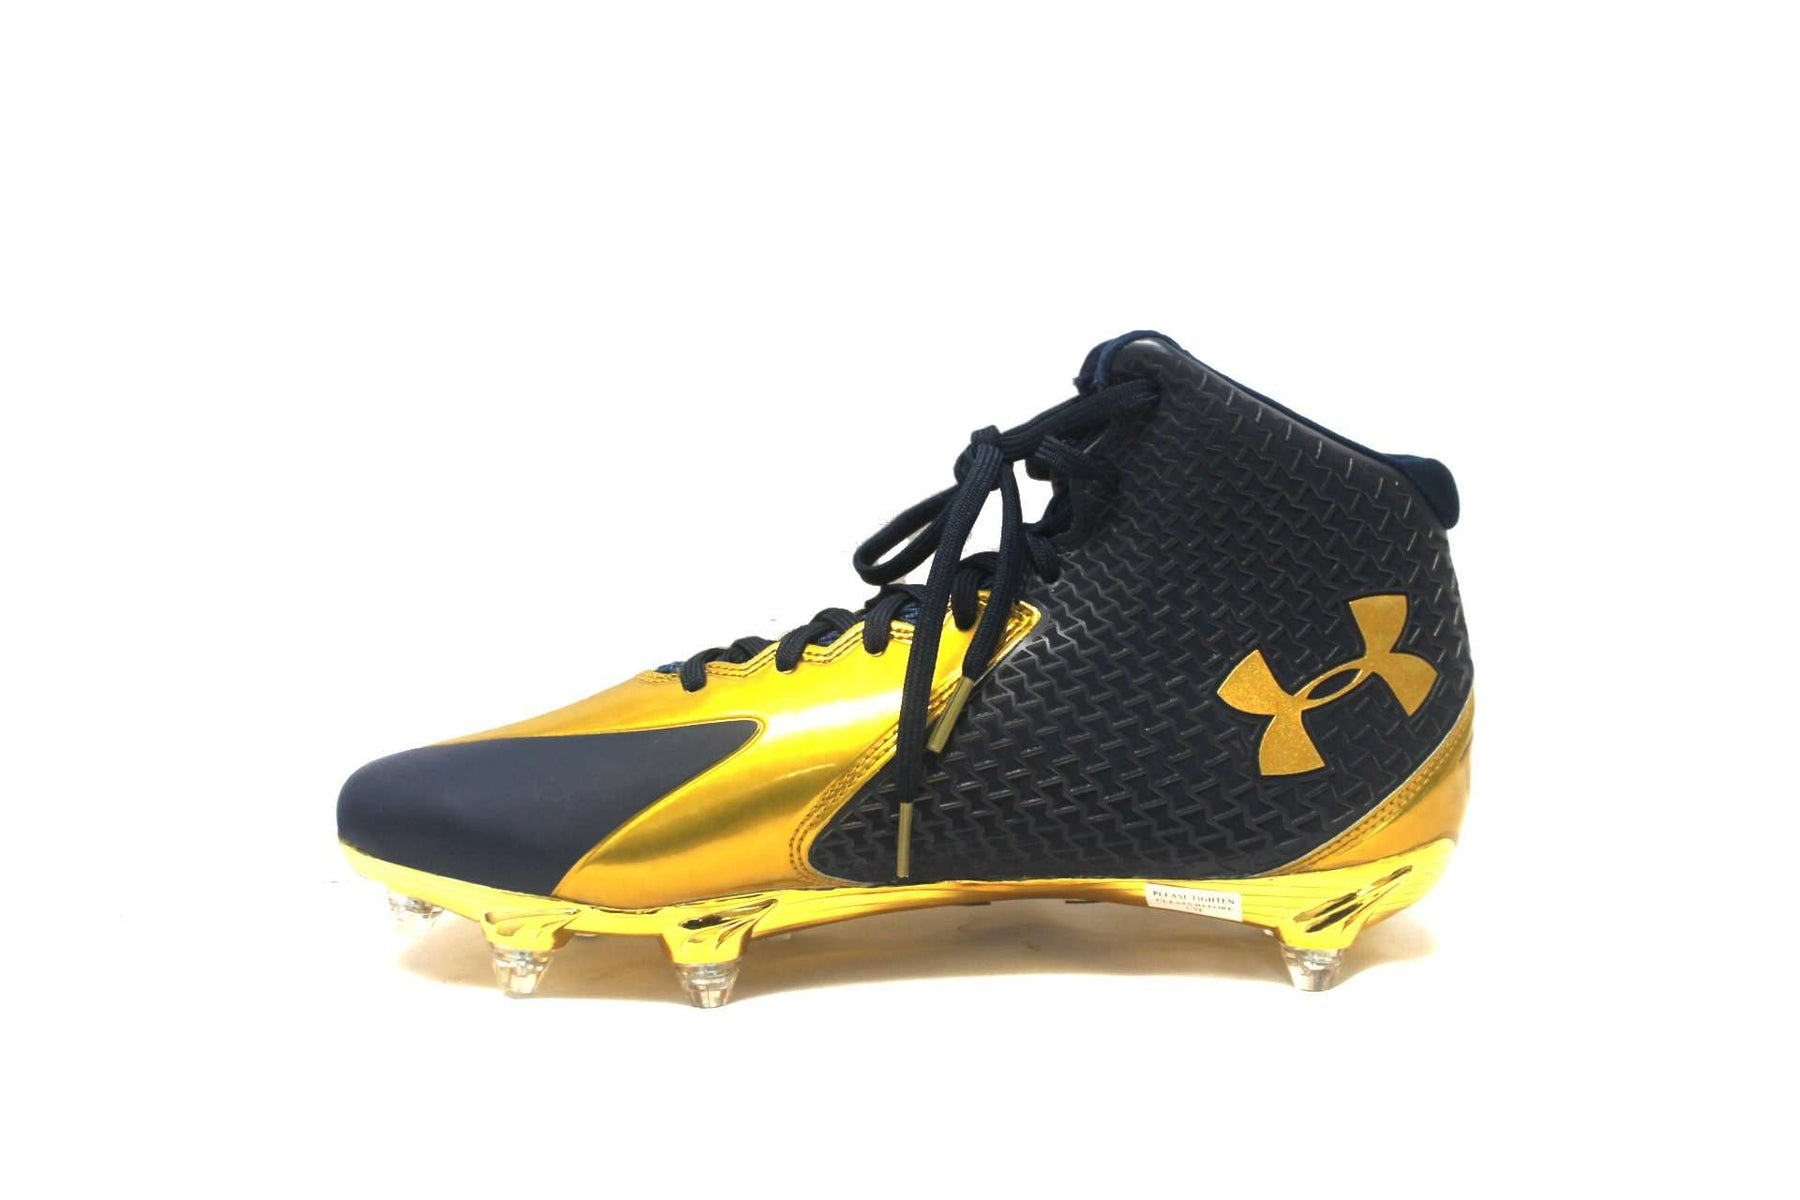 d6e52419f73 ... Under Armour Team Nitro Mid D Football Cleats - League Outfitters ...